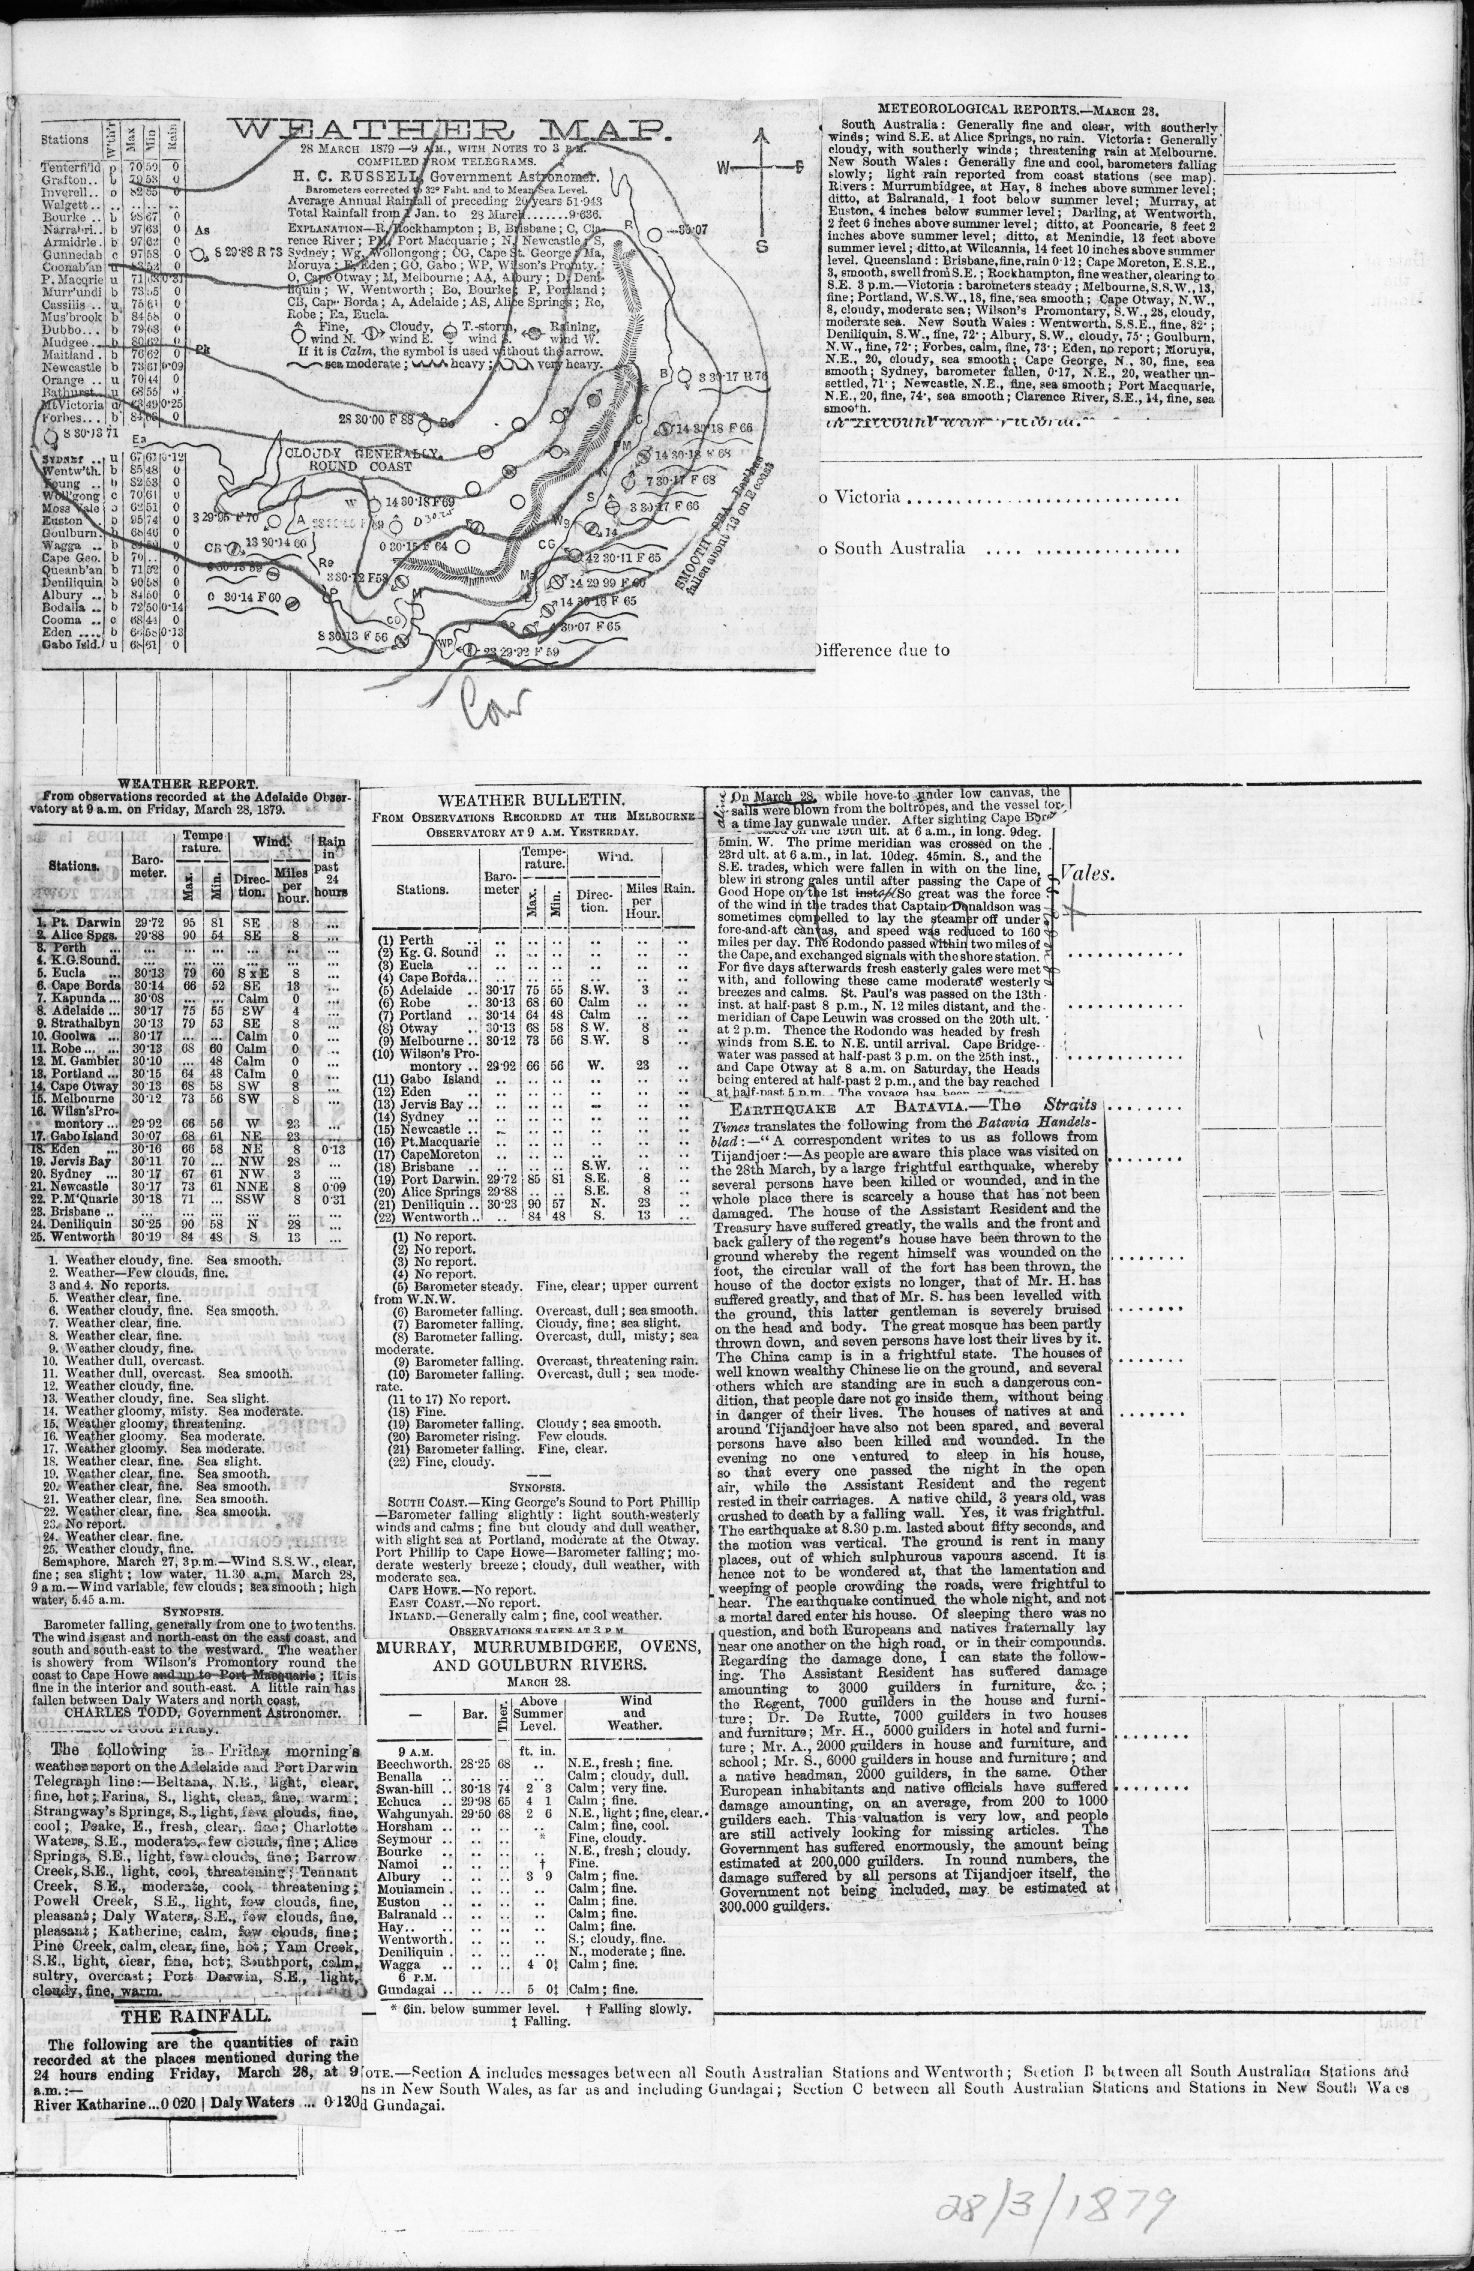 18790328t01 Weather map